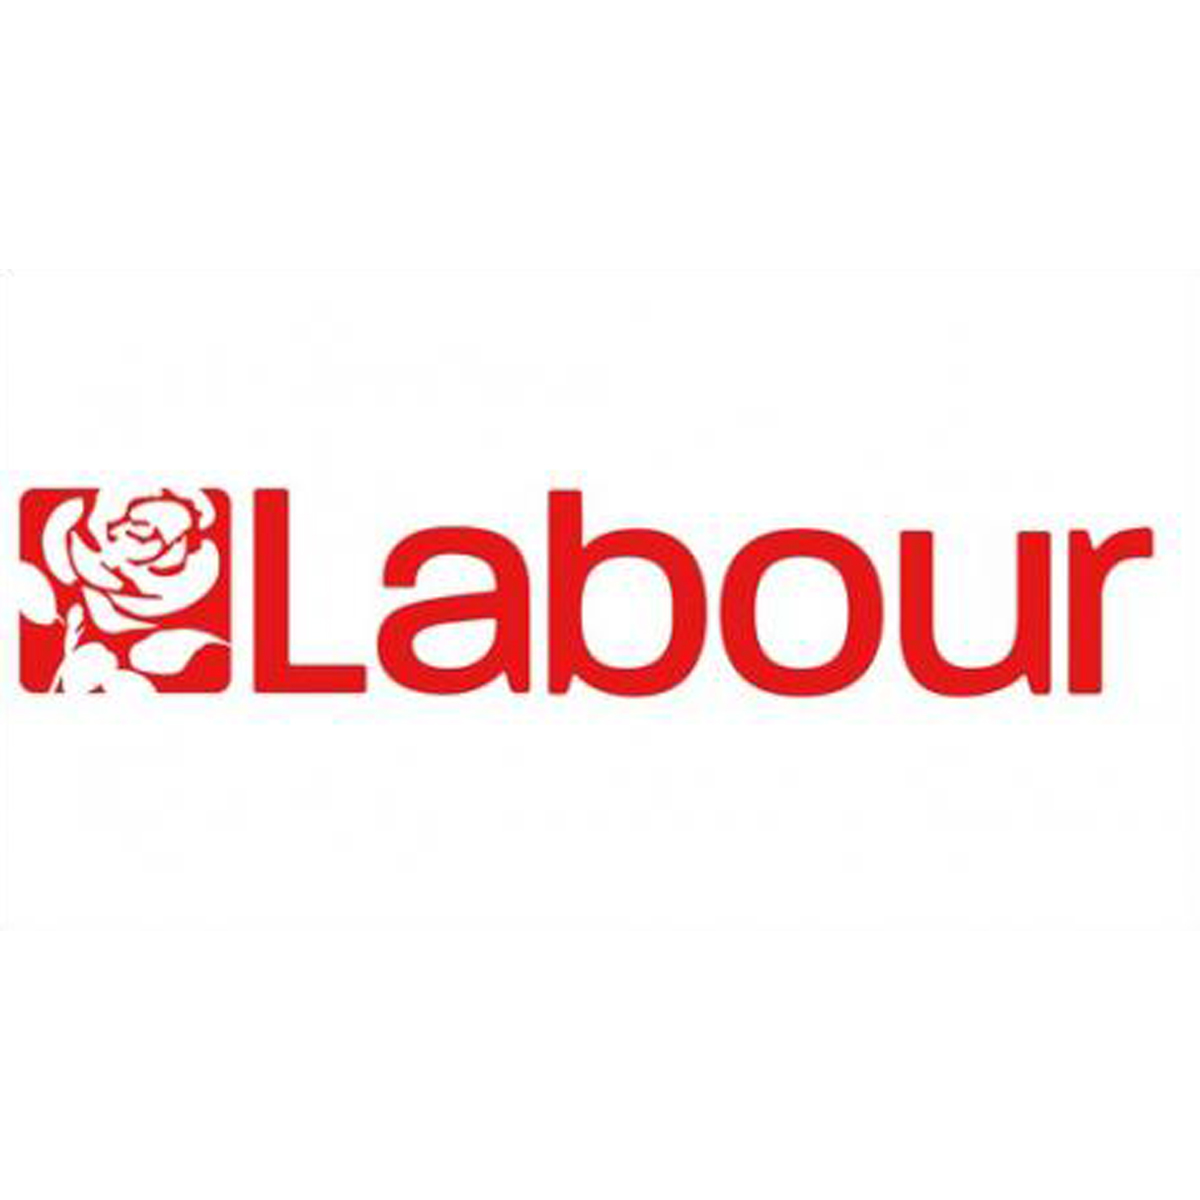 Warrington Young Labour impress at conference